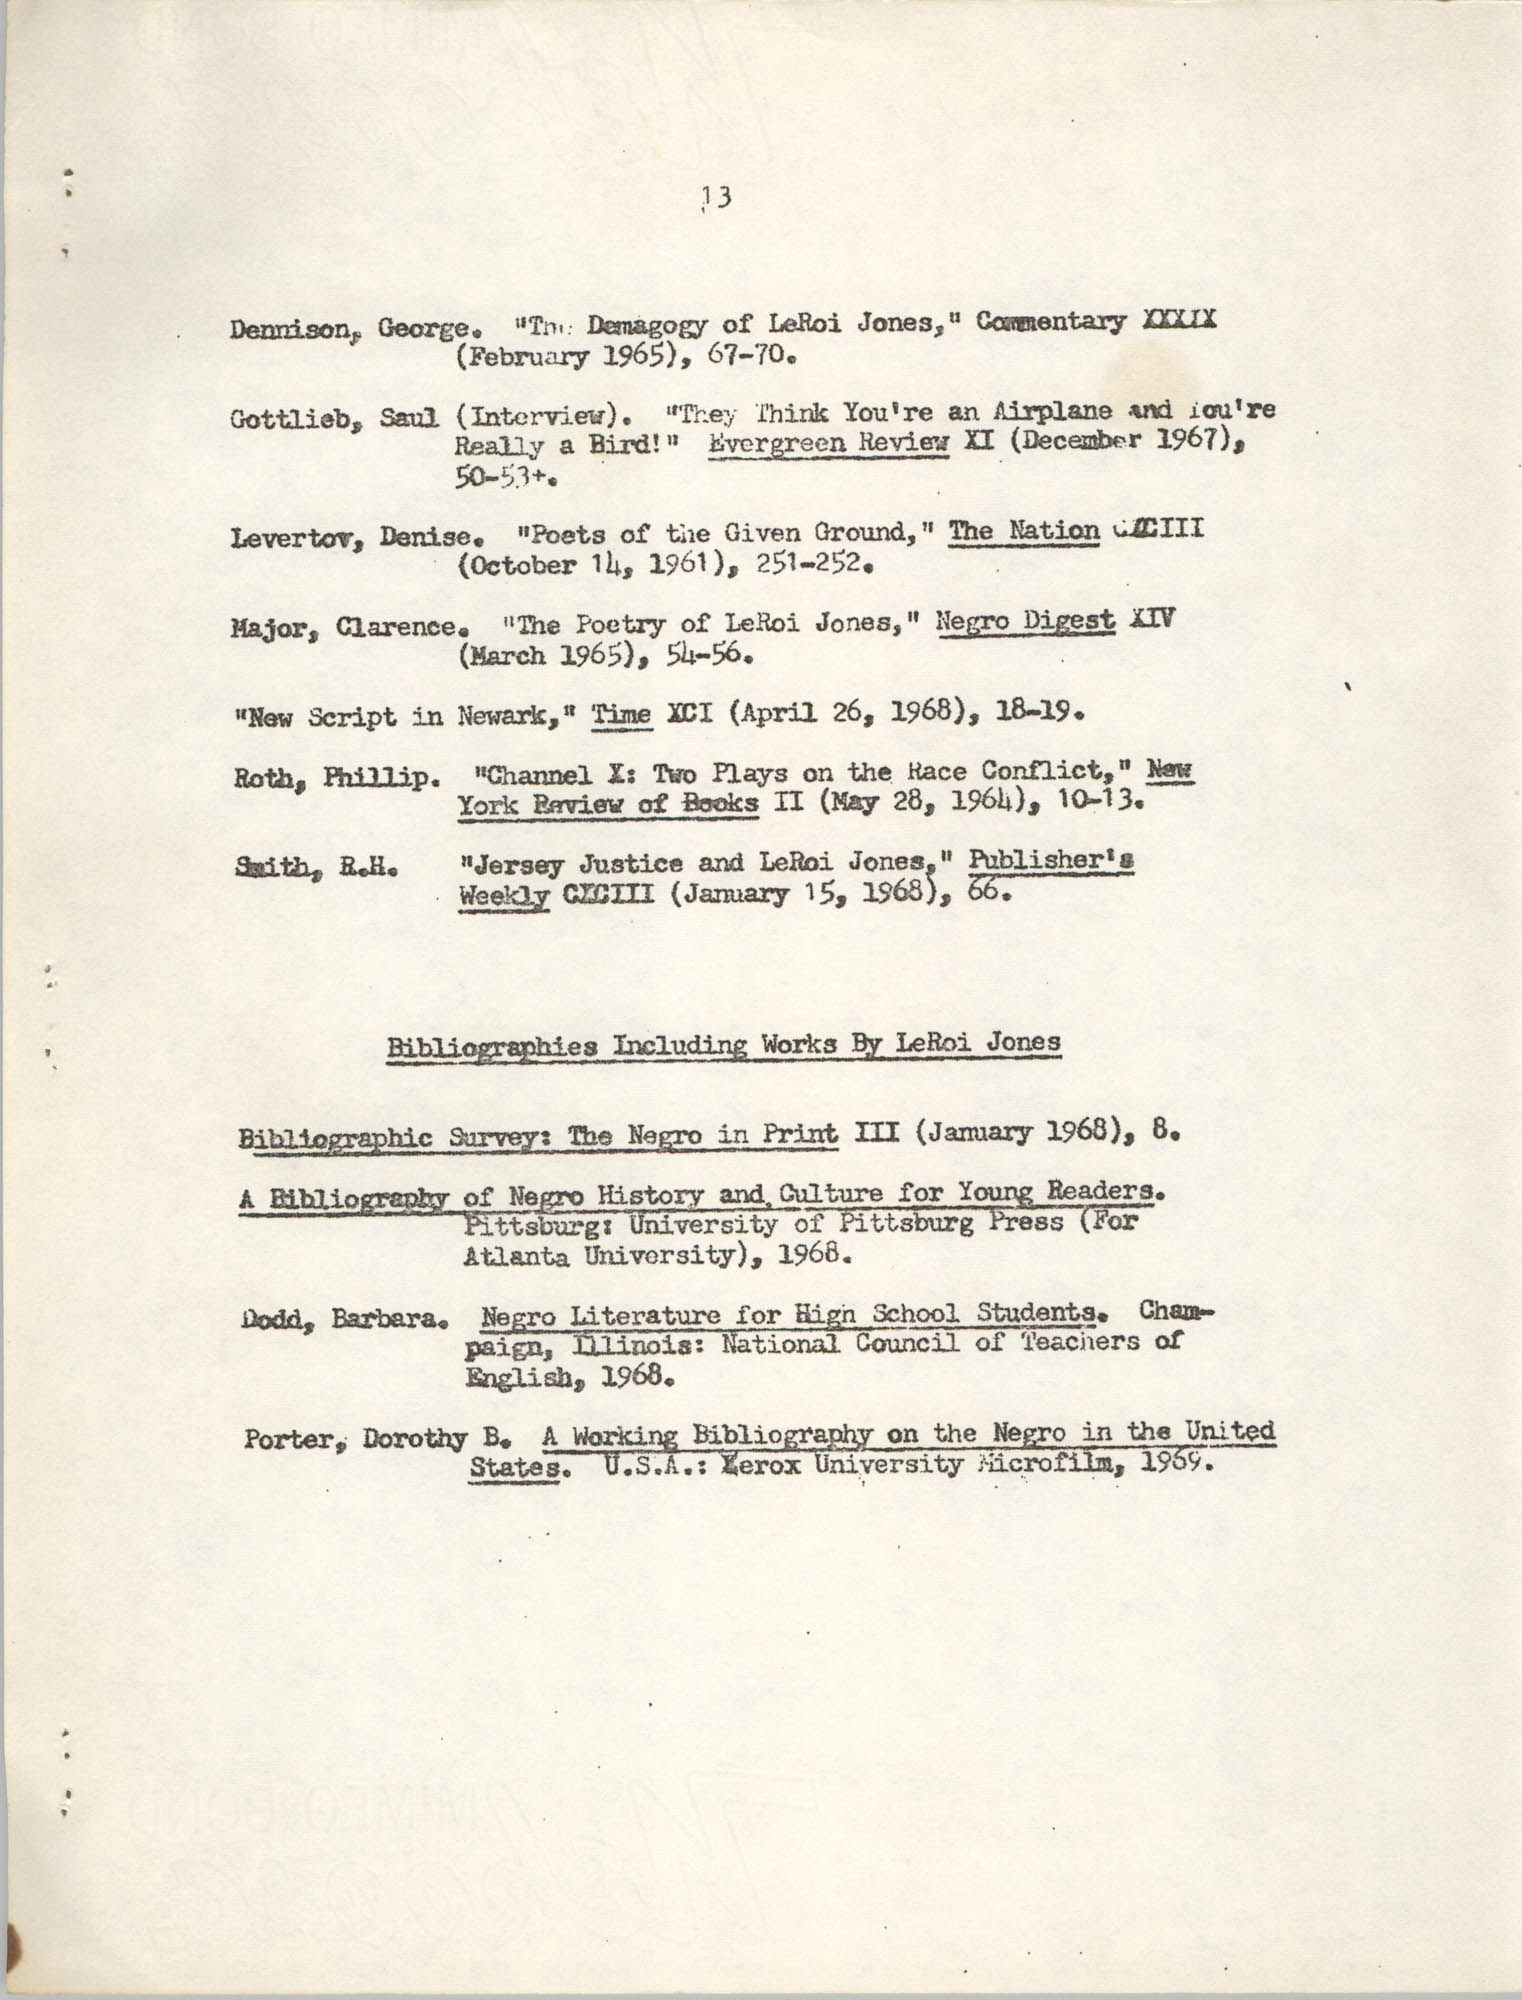 Center for African and African-American Studies Bibliography No. 2, Page 13